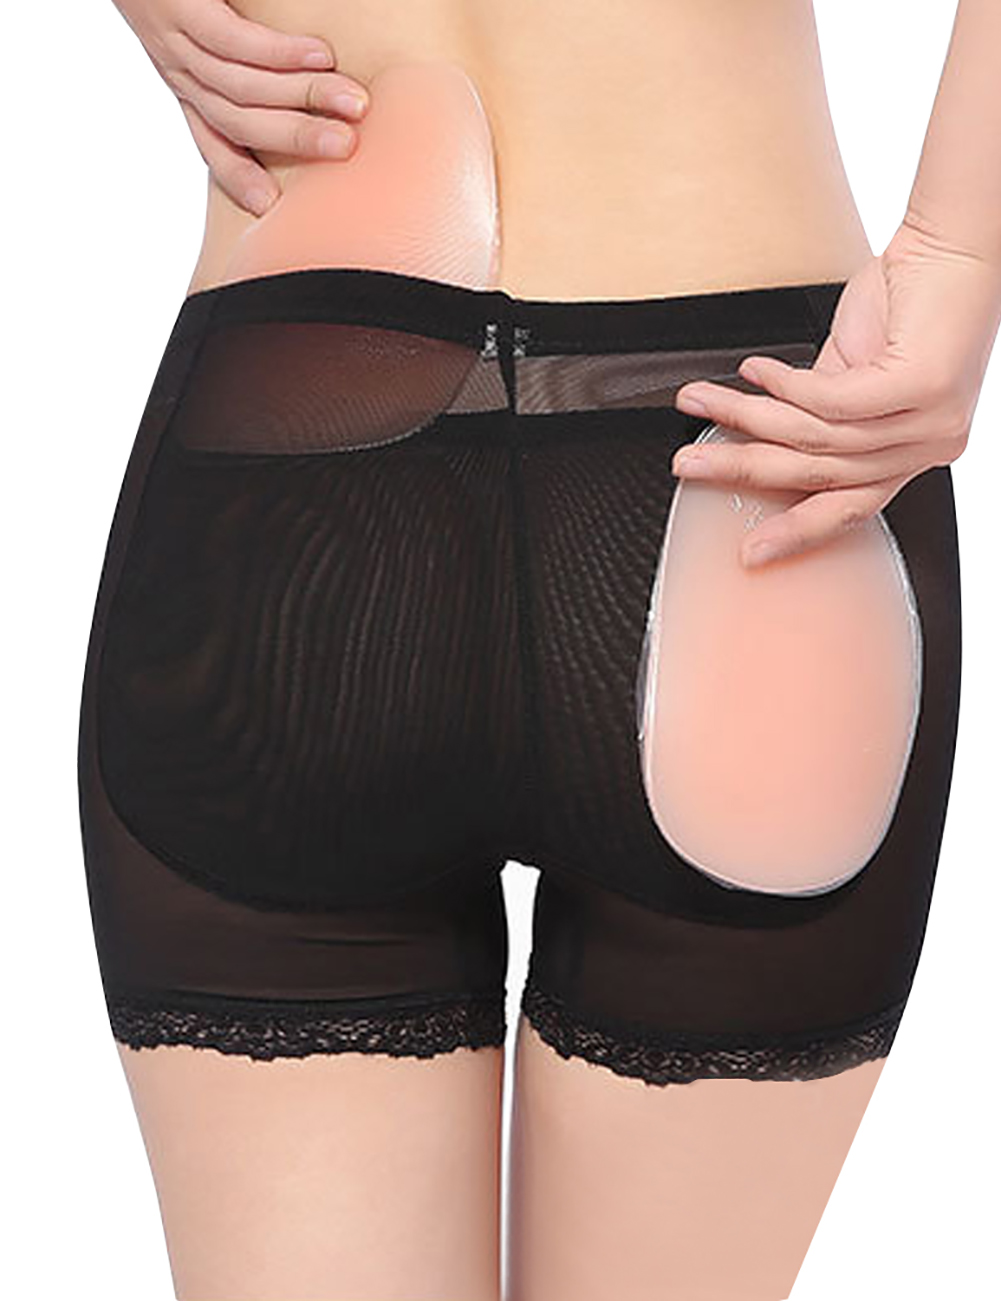 //cdn.affectcloud.com/feelingirldress/upload/imgs/Shapewear/Butt_Lift_Shaper/LB6811/LB6811-201912245e01ad3e36ac7.jpg